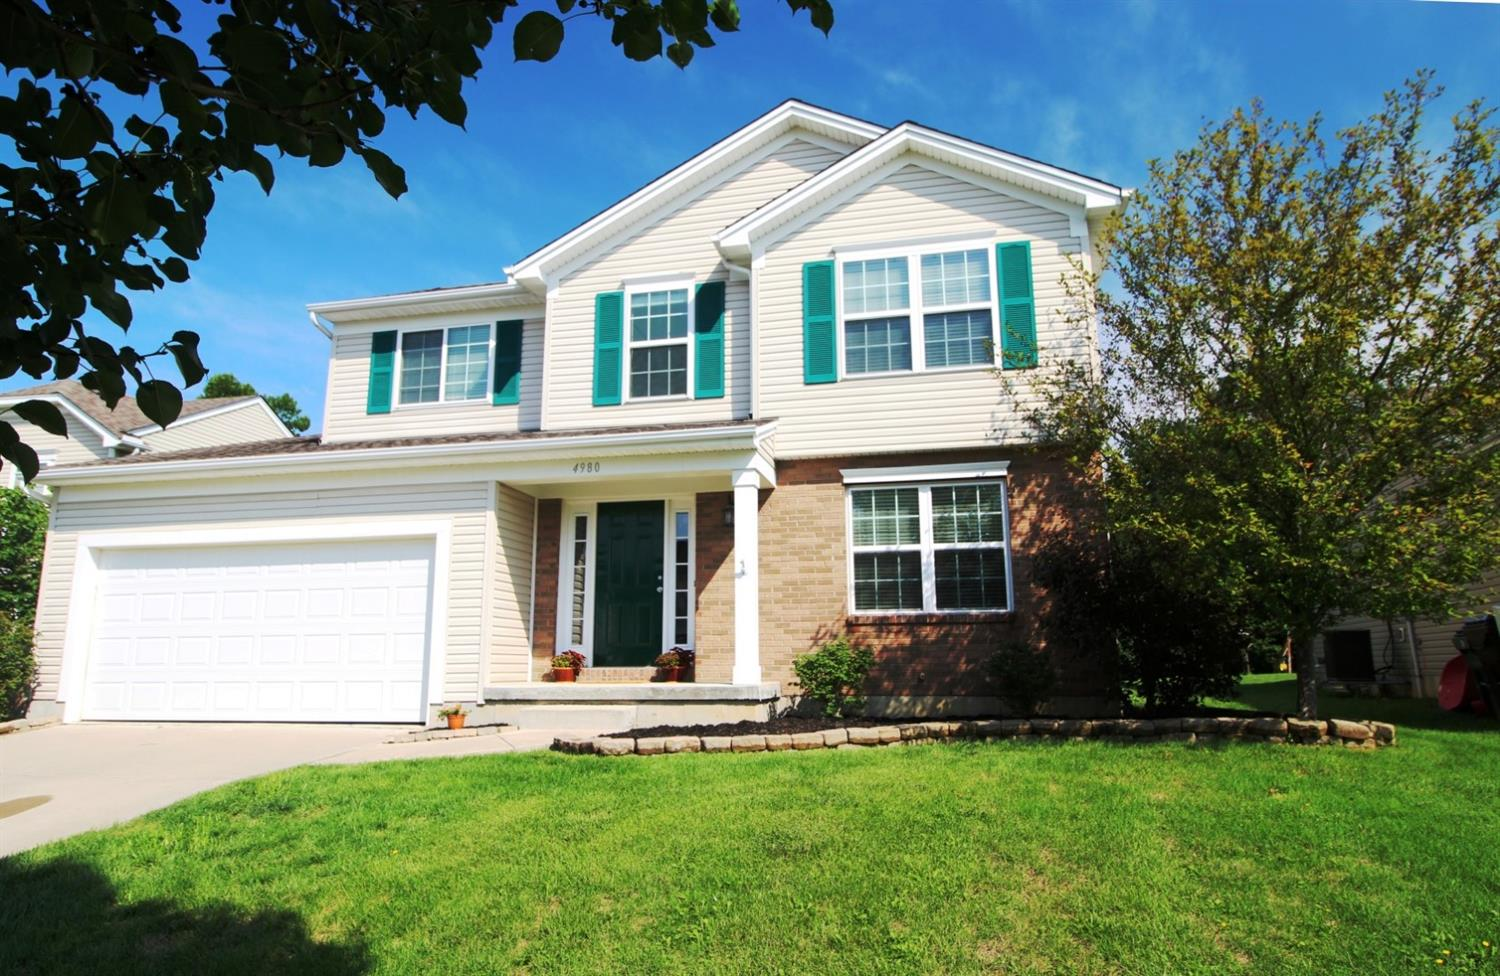 4980 Jessica Suzanne Dr Morrow, OH